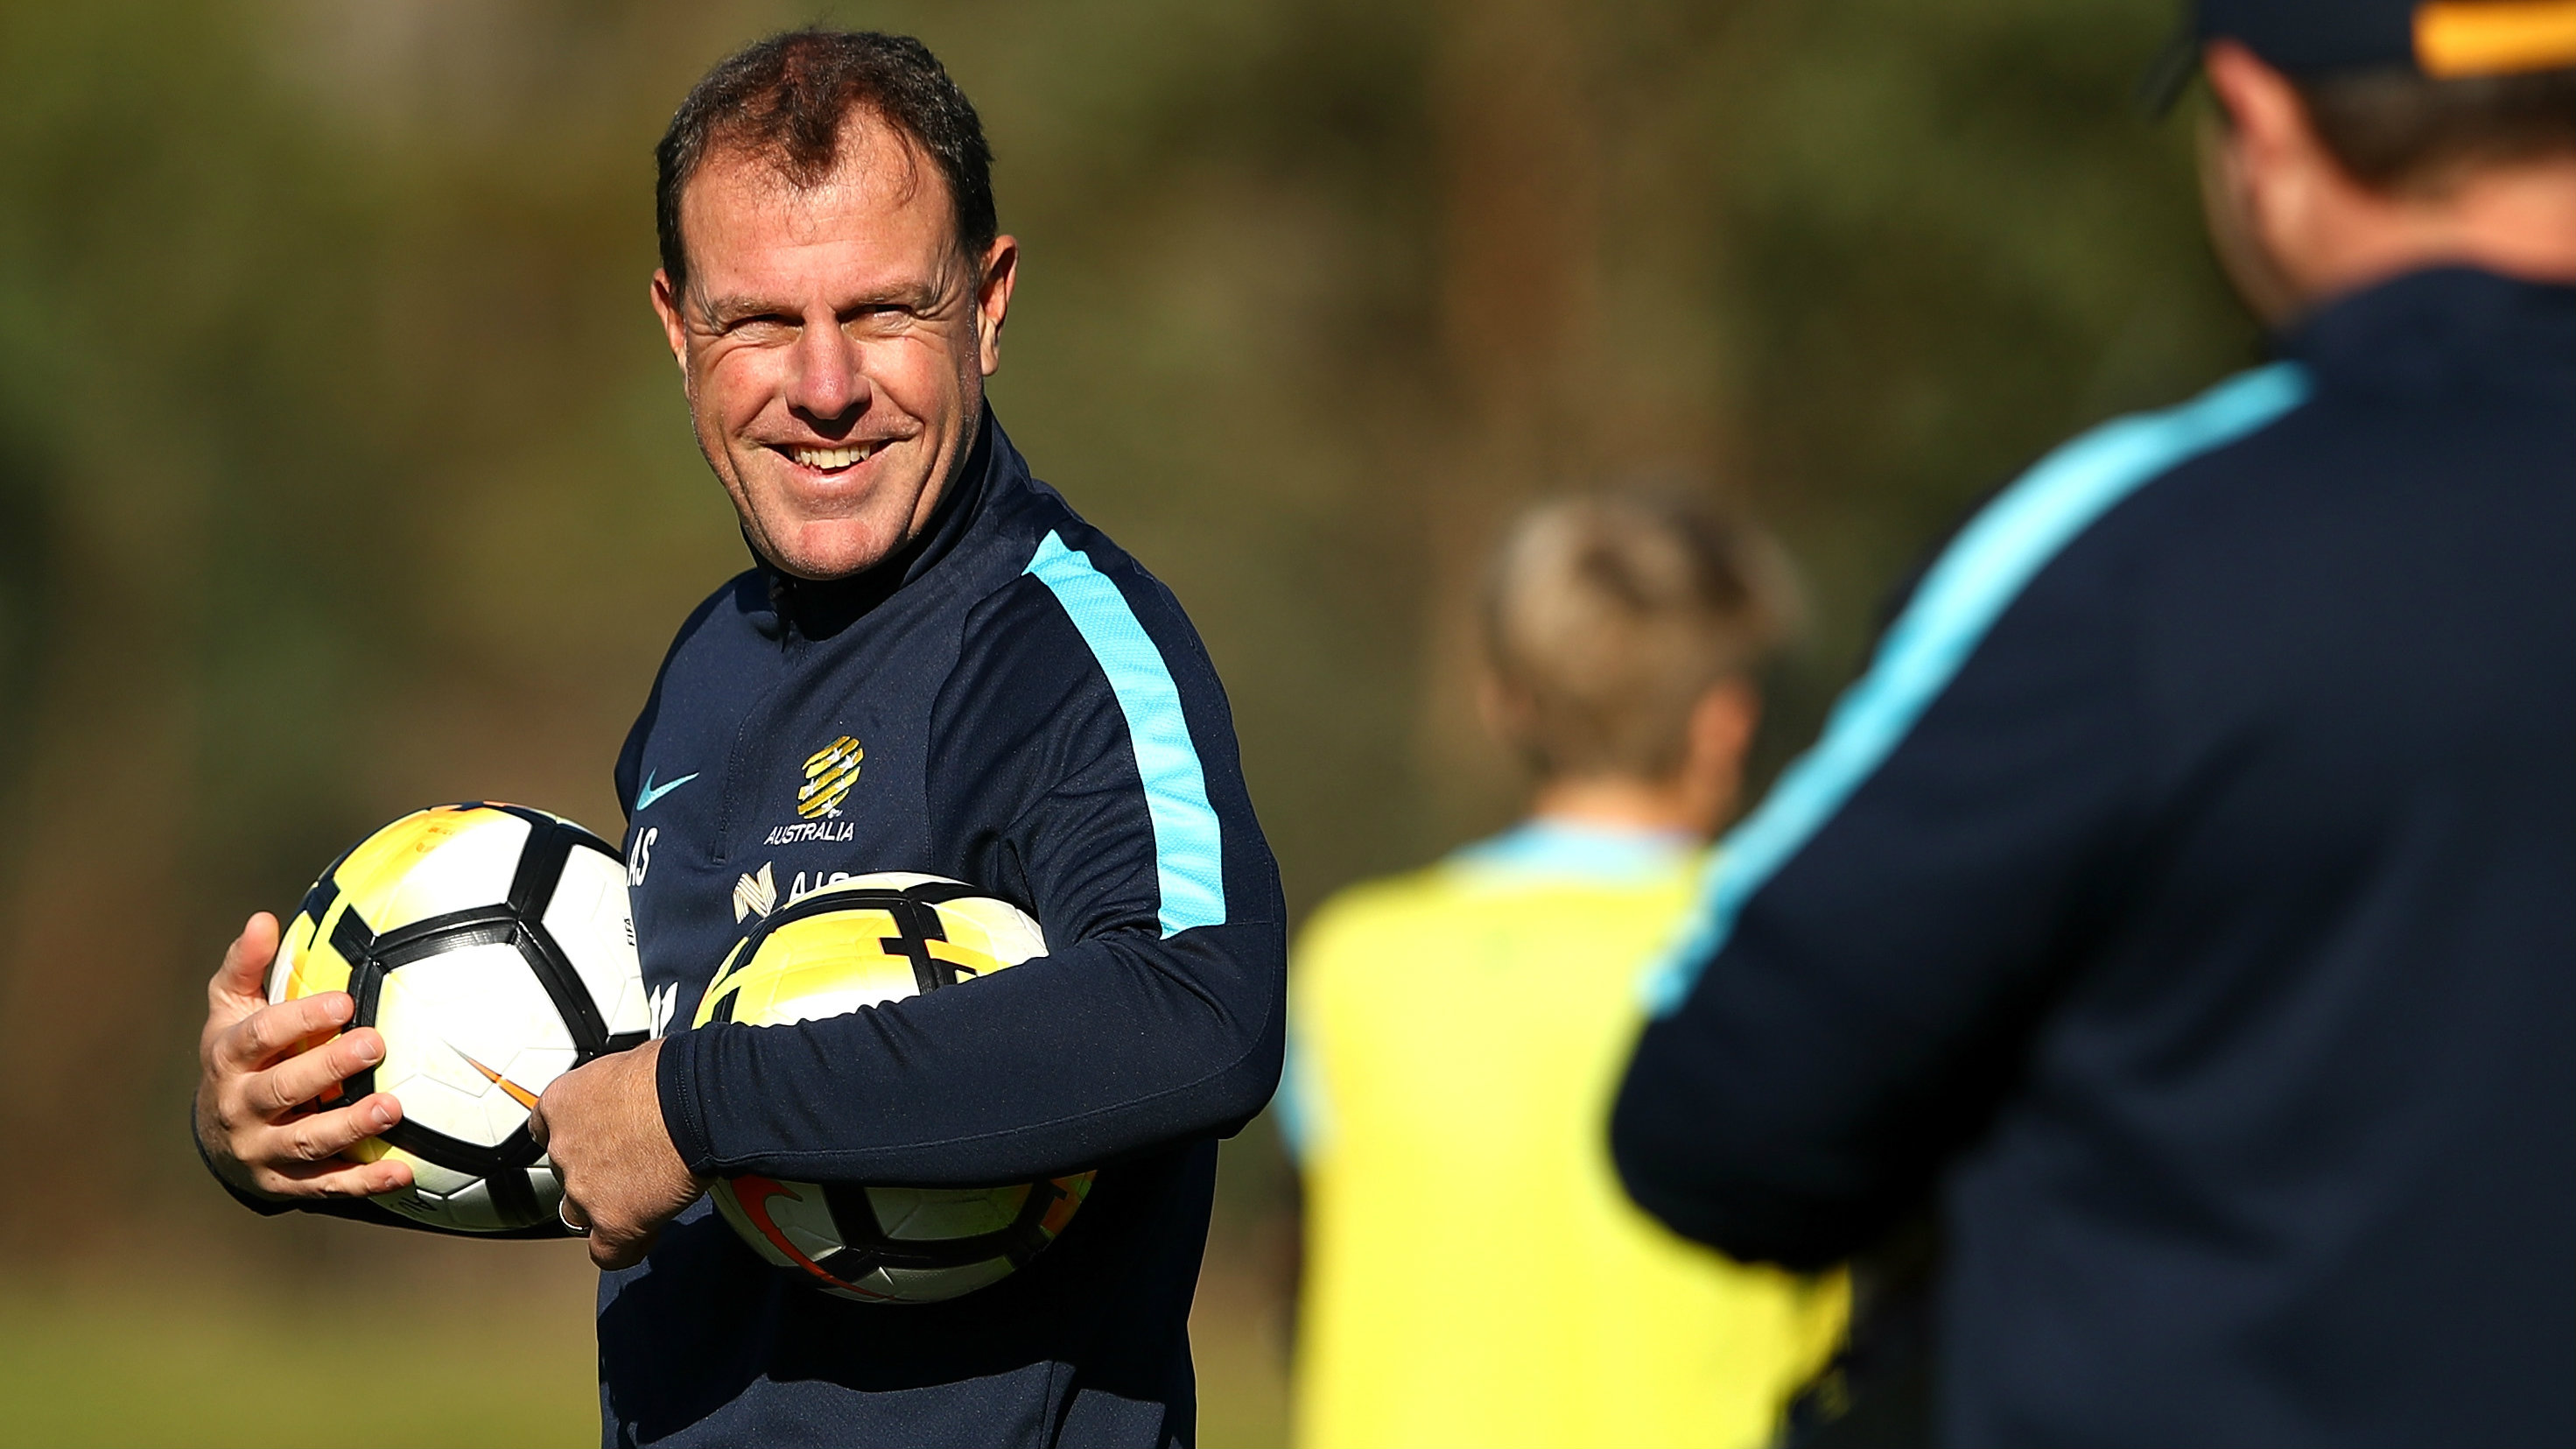 Westfield Matildas boss Alen Stajcic runs his eye over a training session in Sydney.